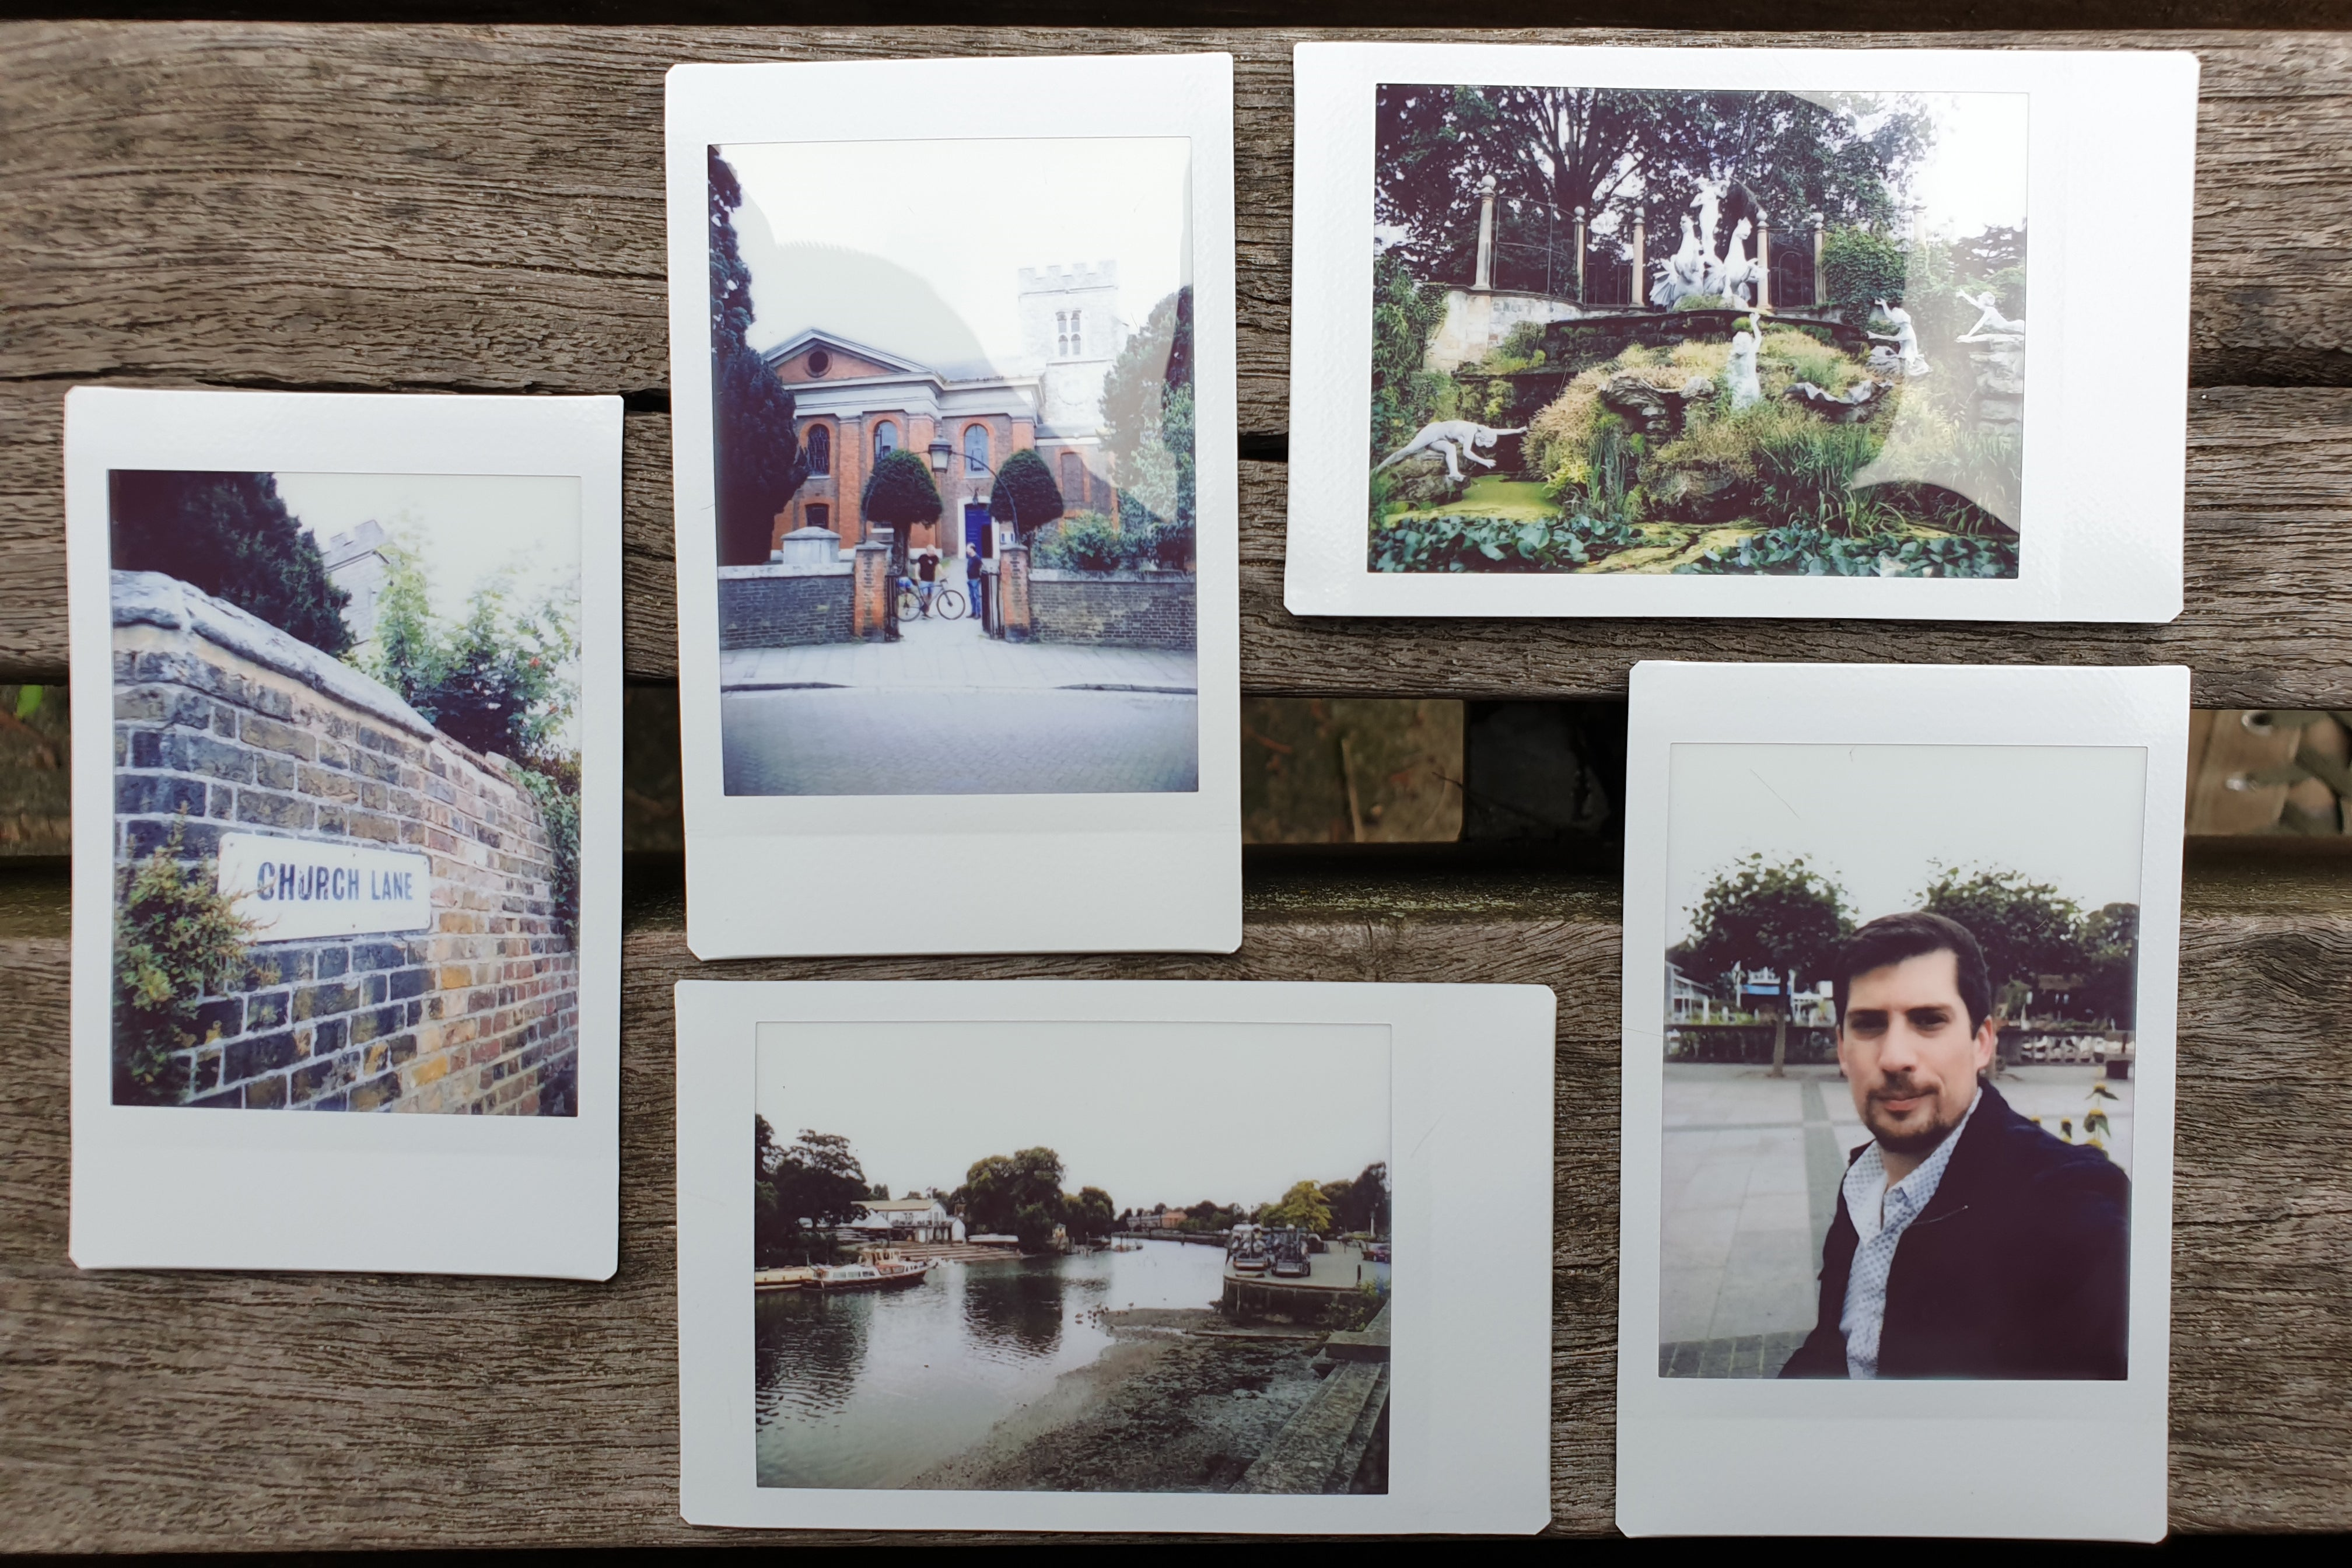 Fujifilm Instax Mini LiPlay filters washed out